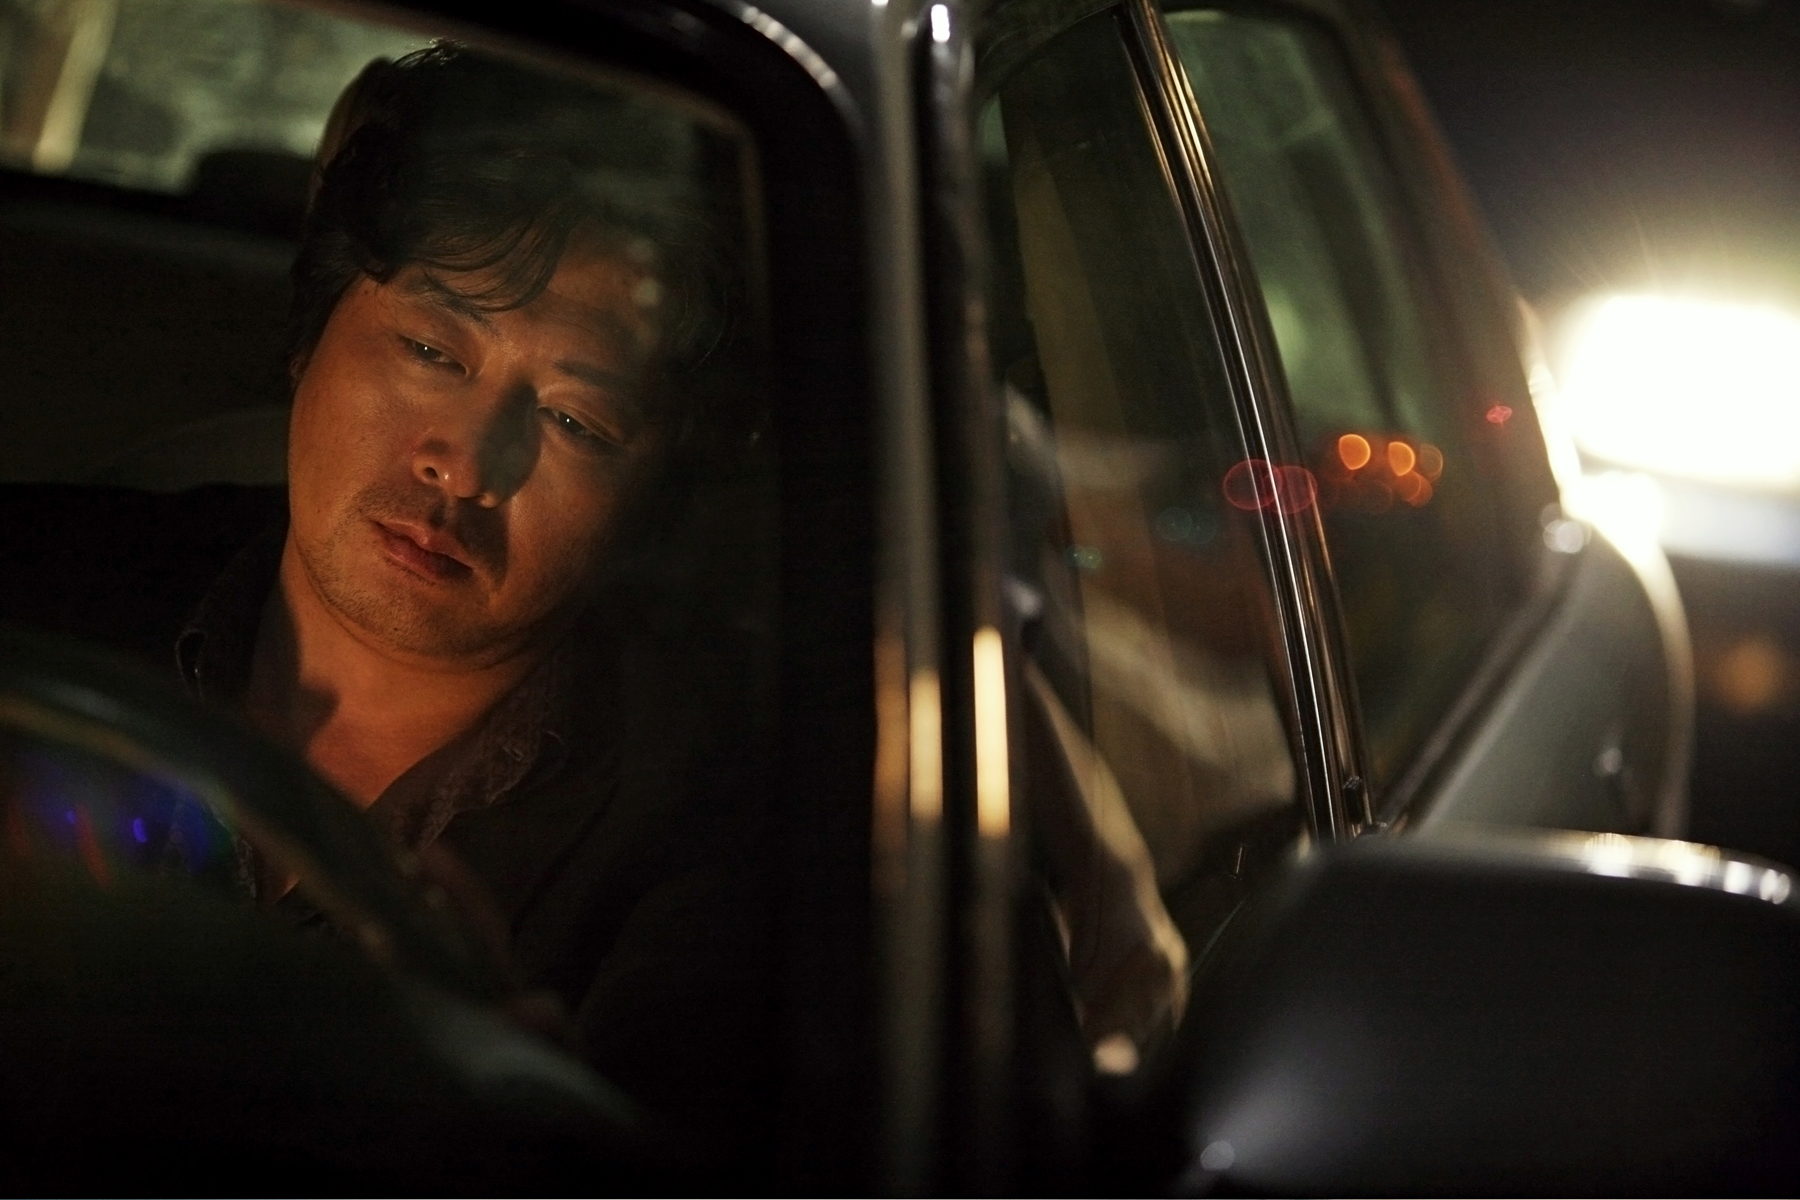 Kim Yoon-Suk has a rough night, The Chaser, 2008